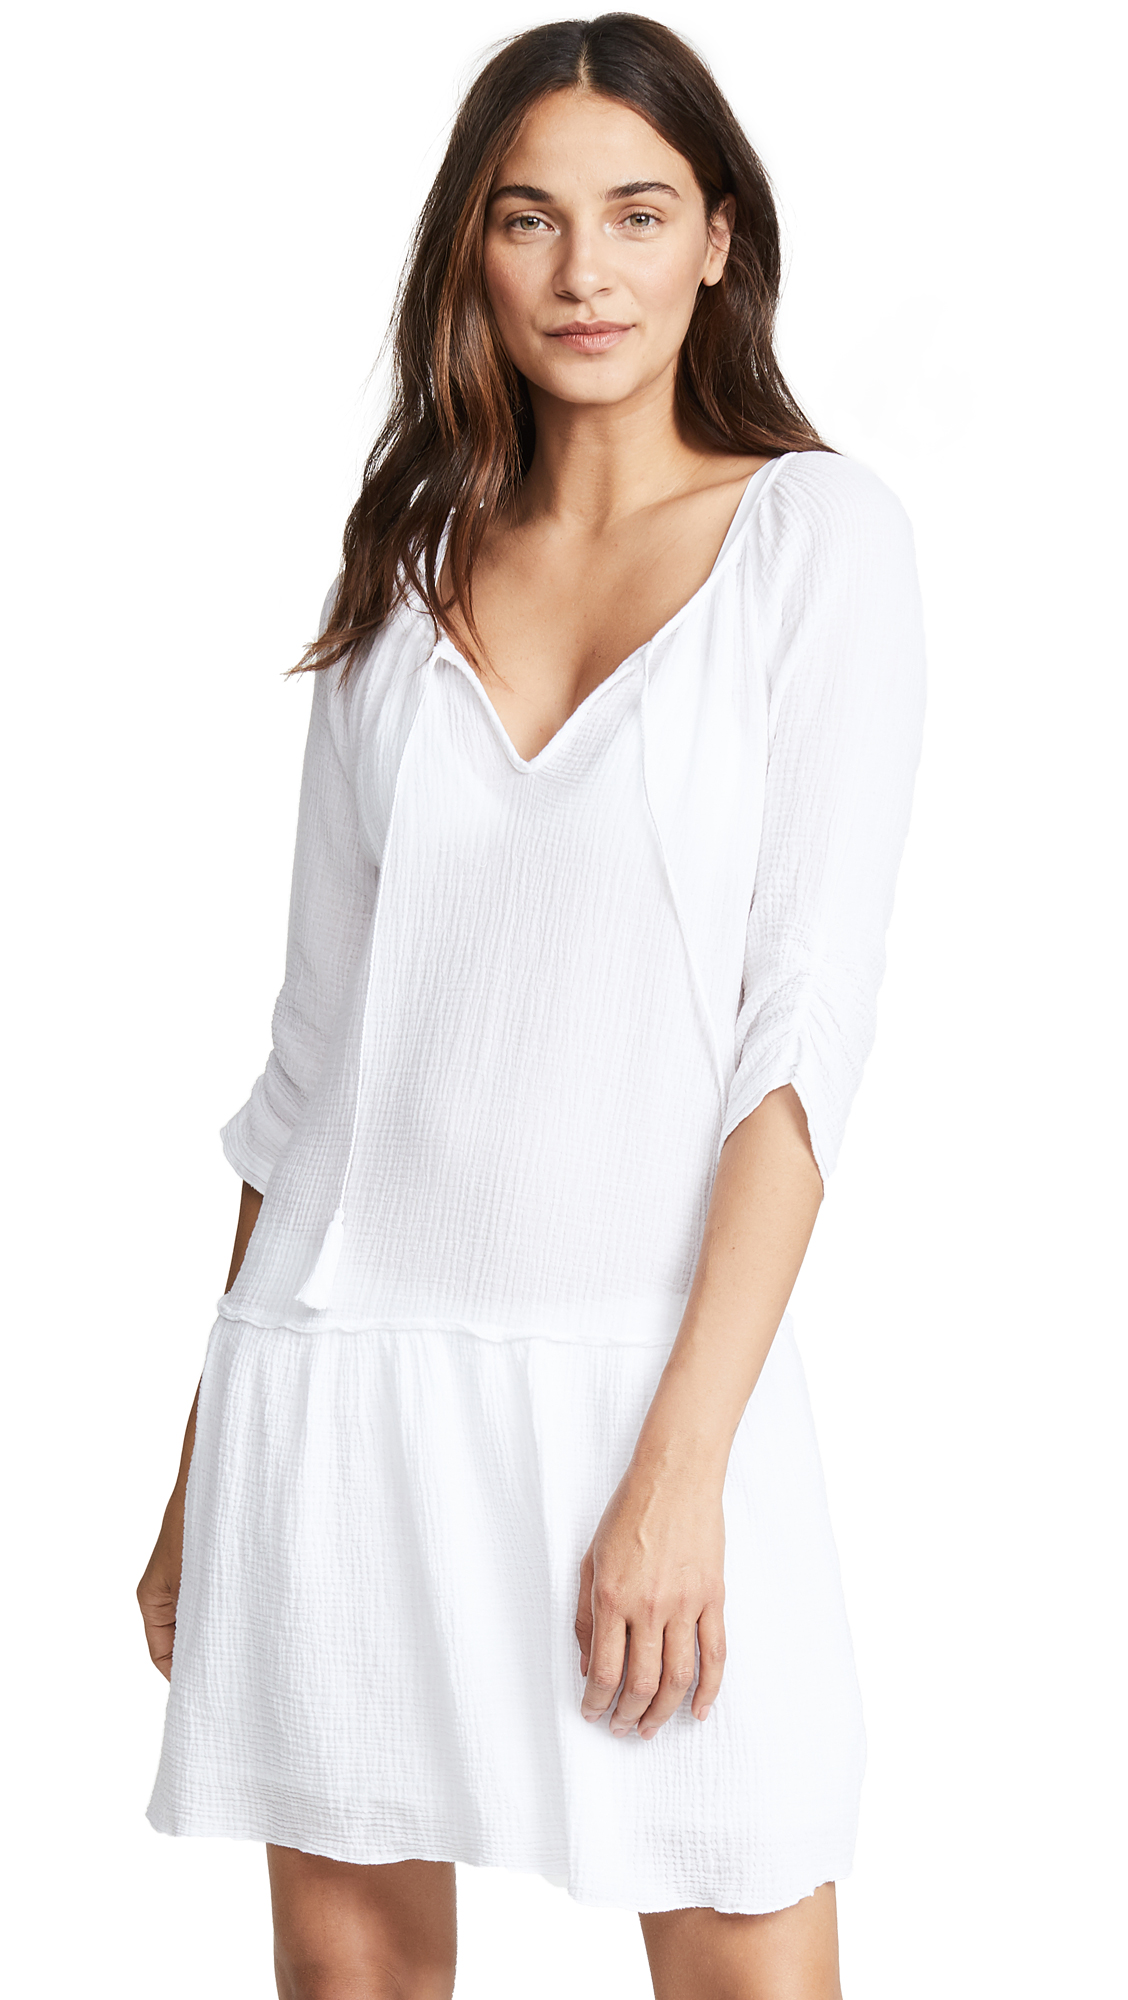 Three Dots Double Gauze Dress In White